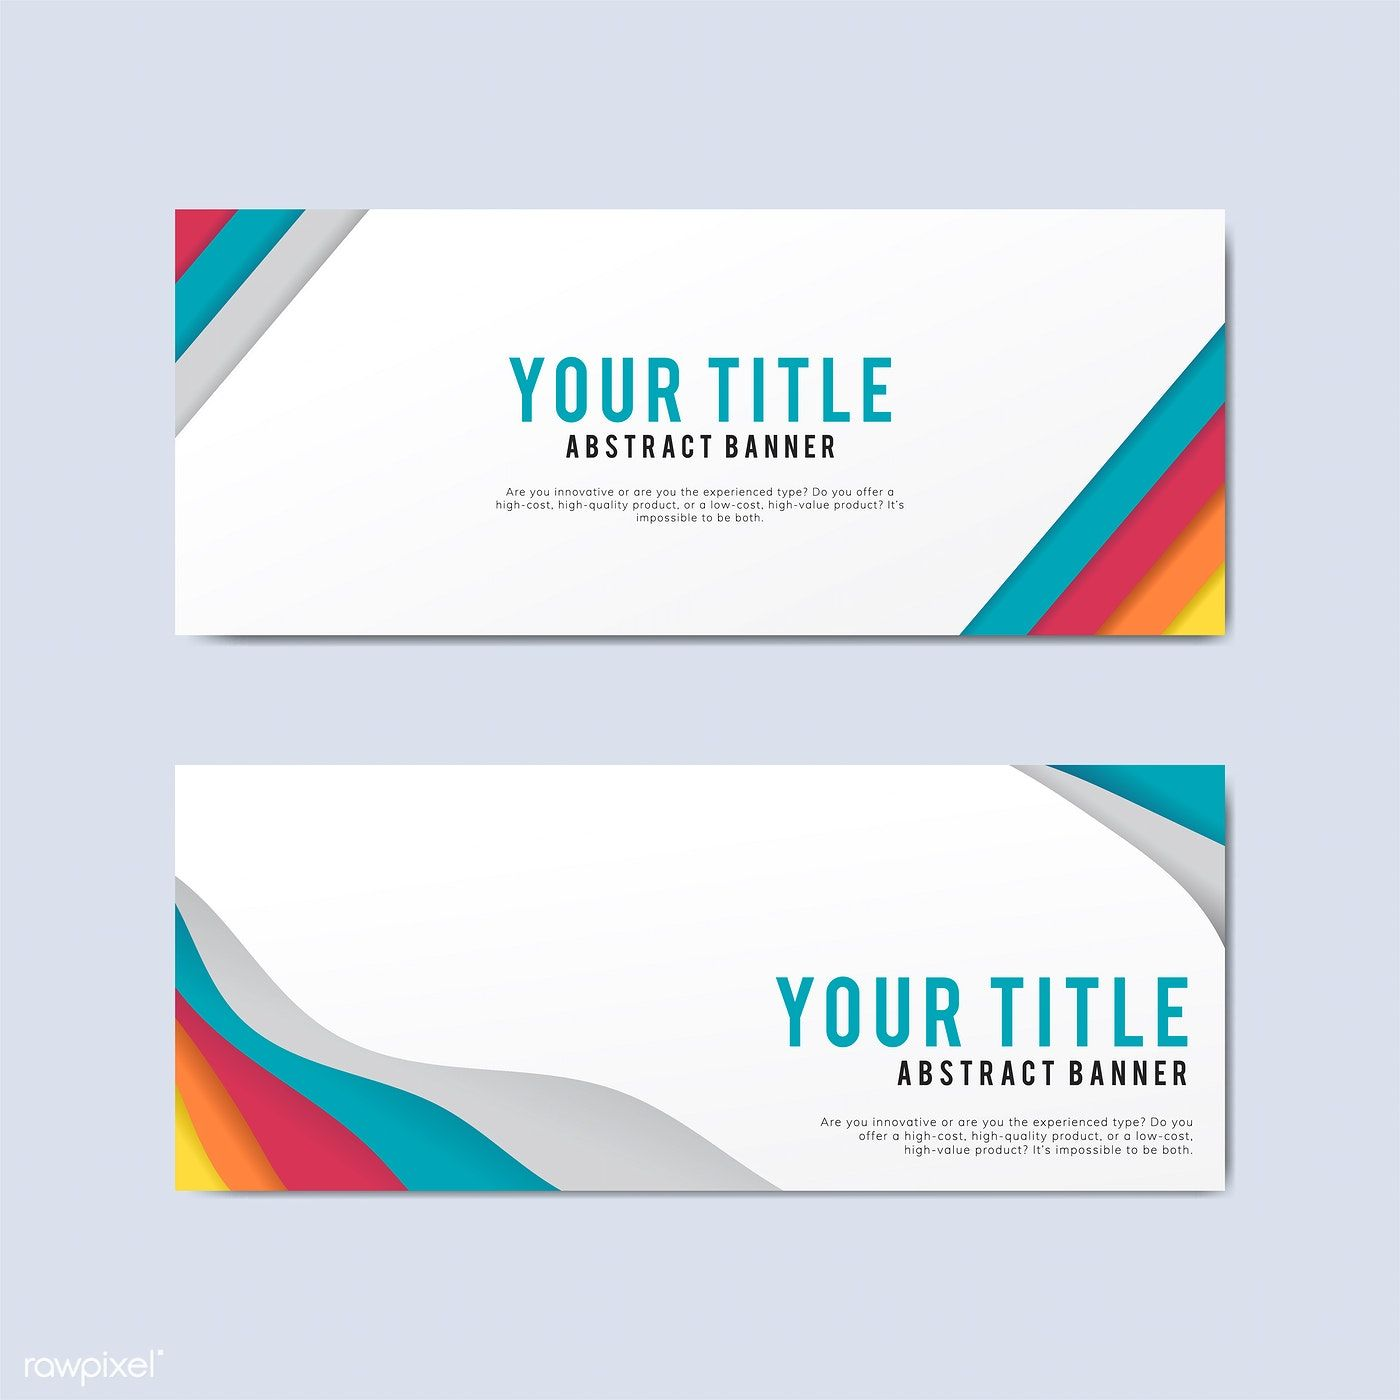 Colorful And Abstract Banner Design Templates Free Image By Rawpixel Com Banner Design Banner Template Design Template Design